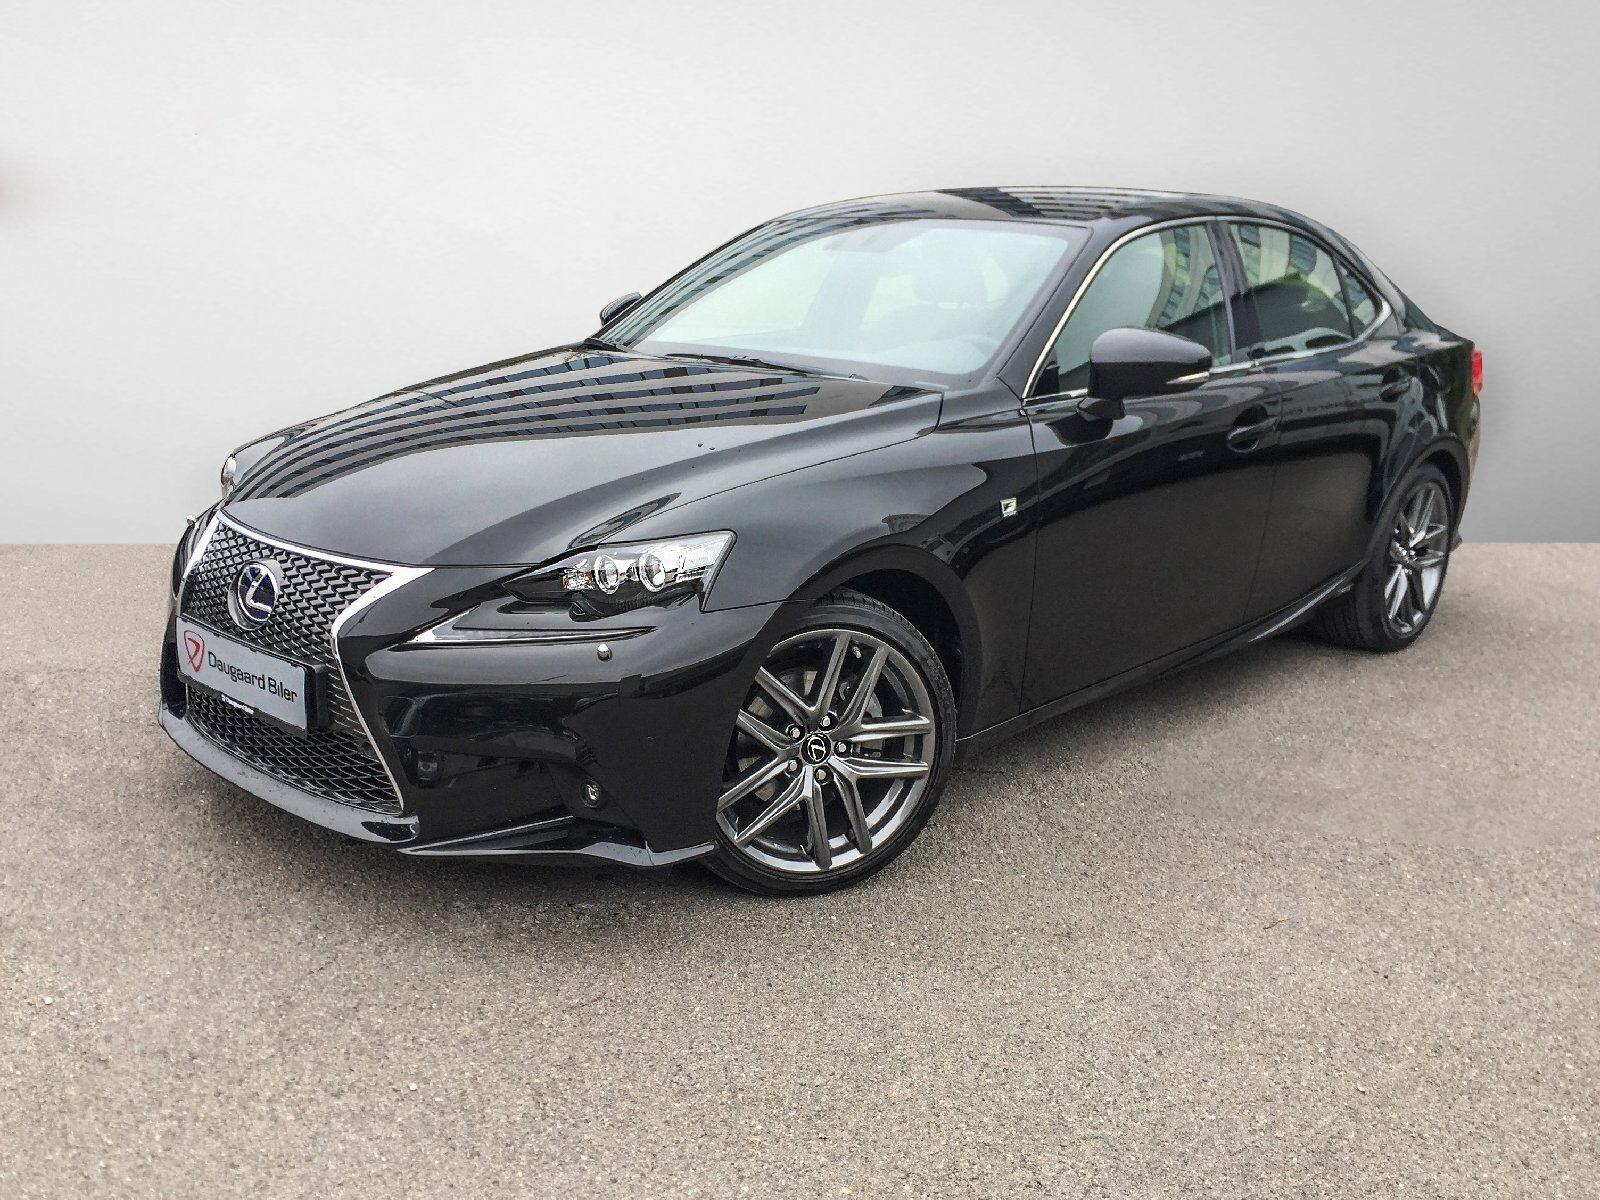 Lexus IS300h 2,5 aut. 4d - 553.900 kr.